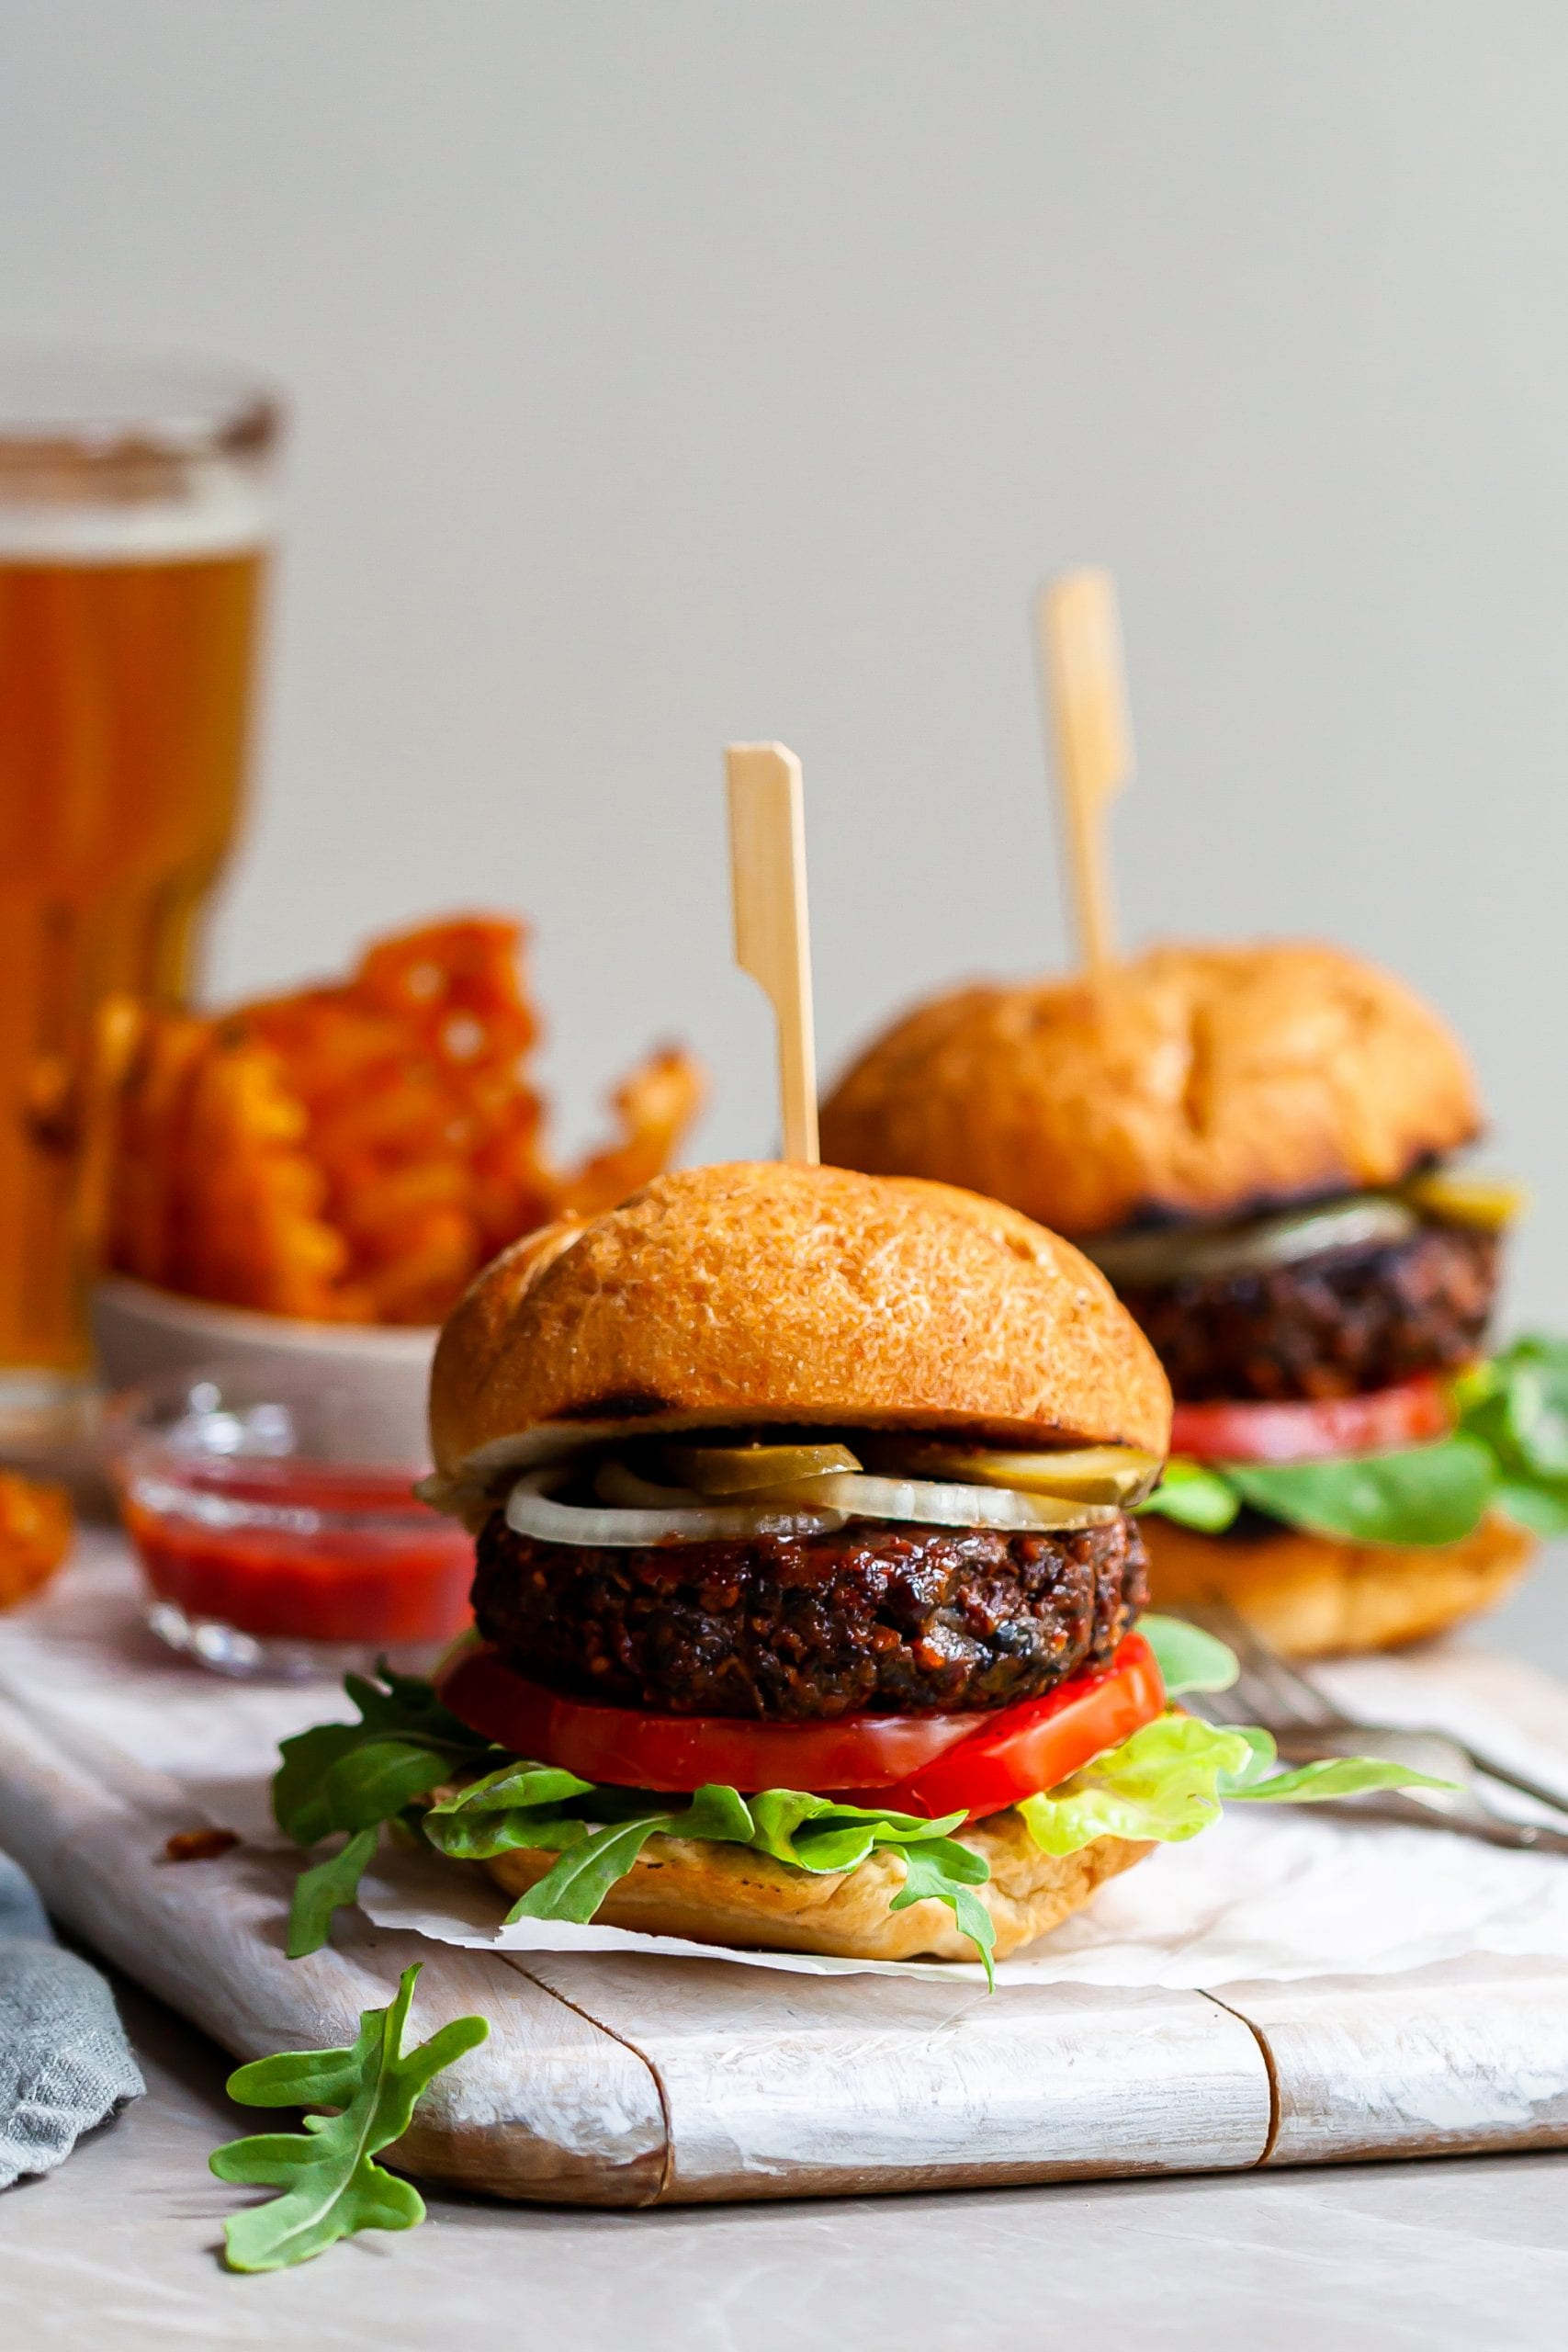 Vegan Burgers – Easy, Grillable and Hearty